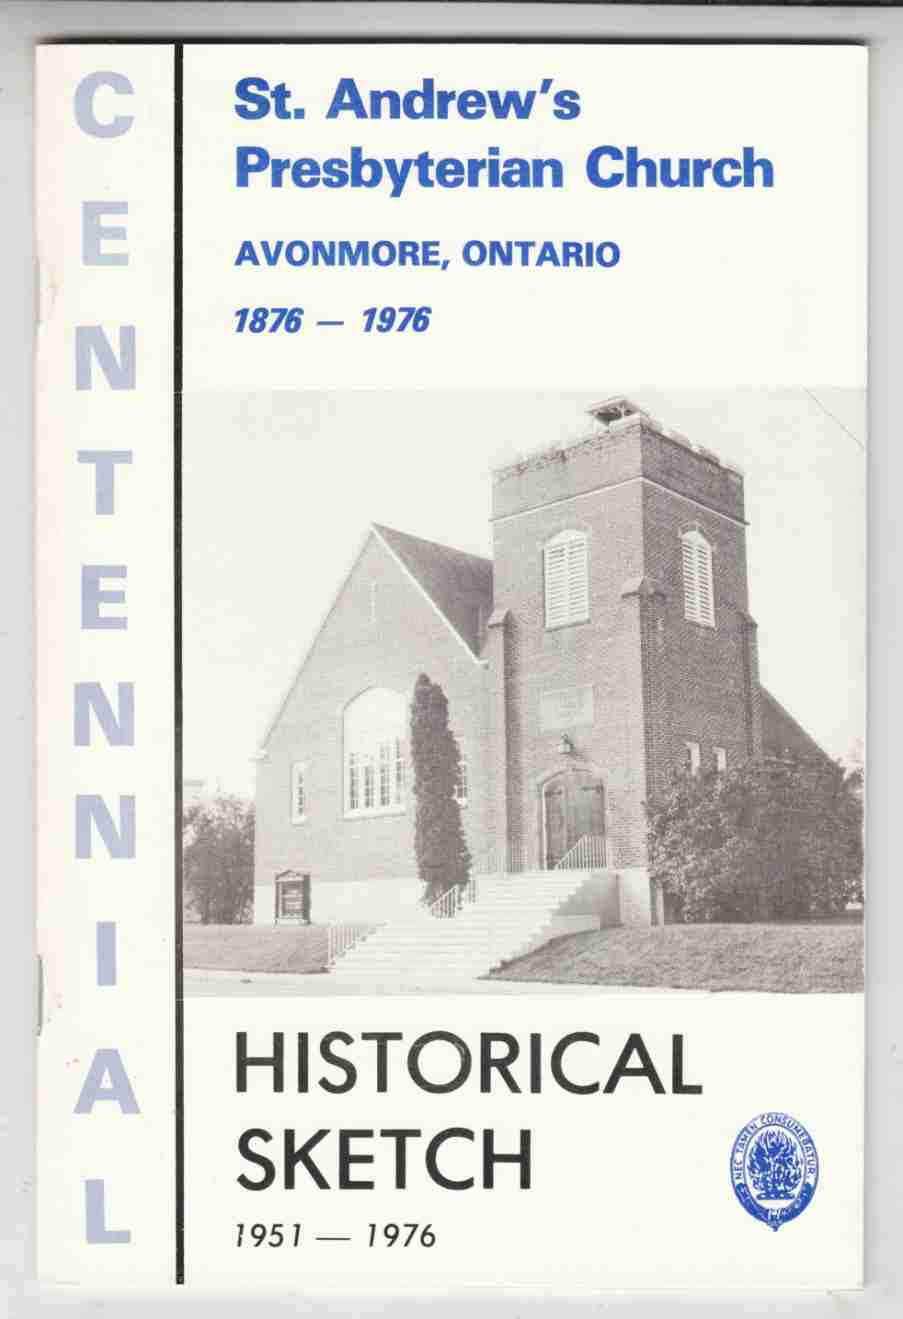 Image for St. Andrew's Church Avonmore, Ontario Historical Sketch 1951 - 1976